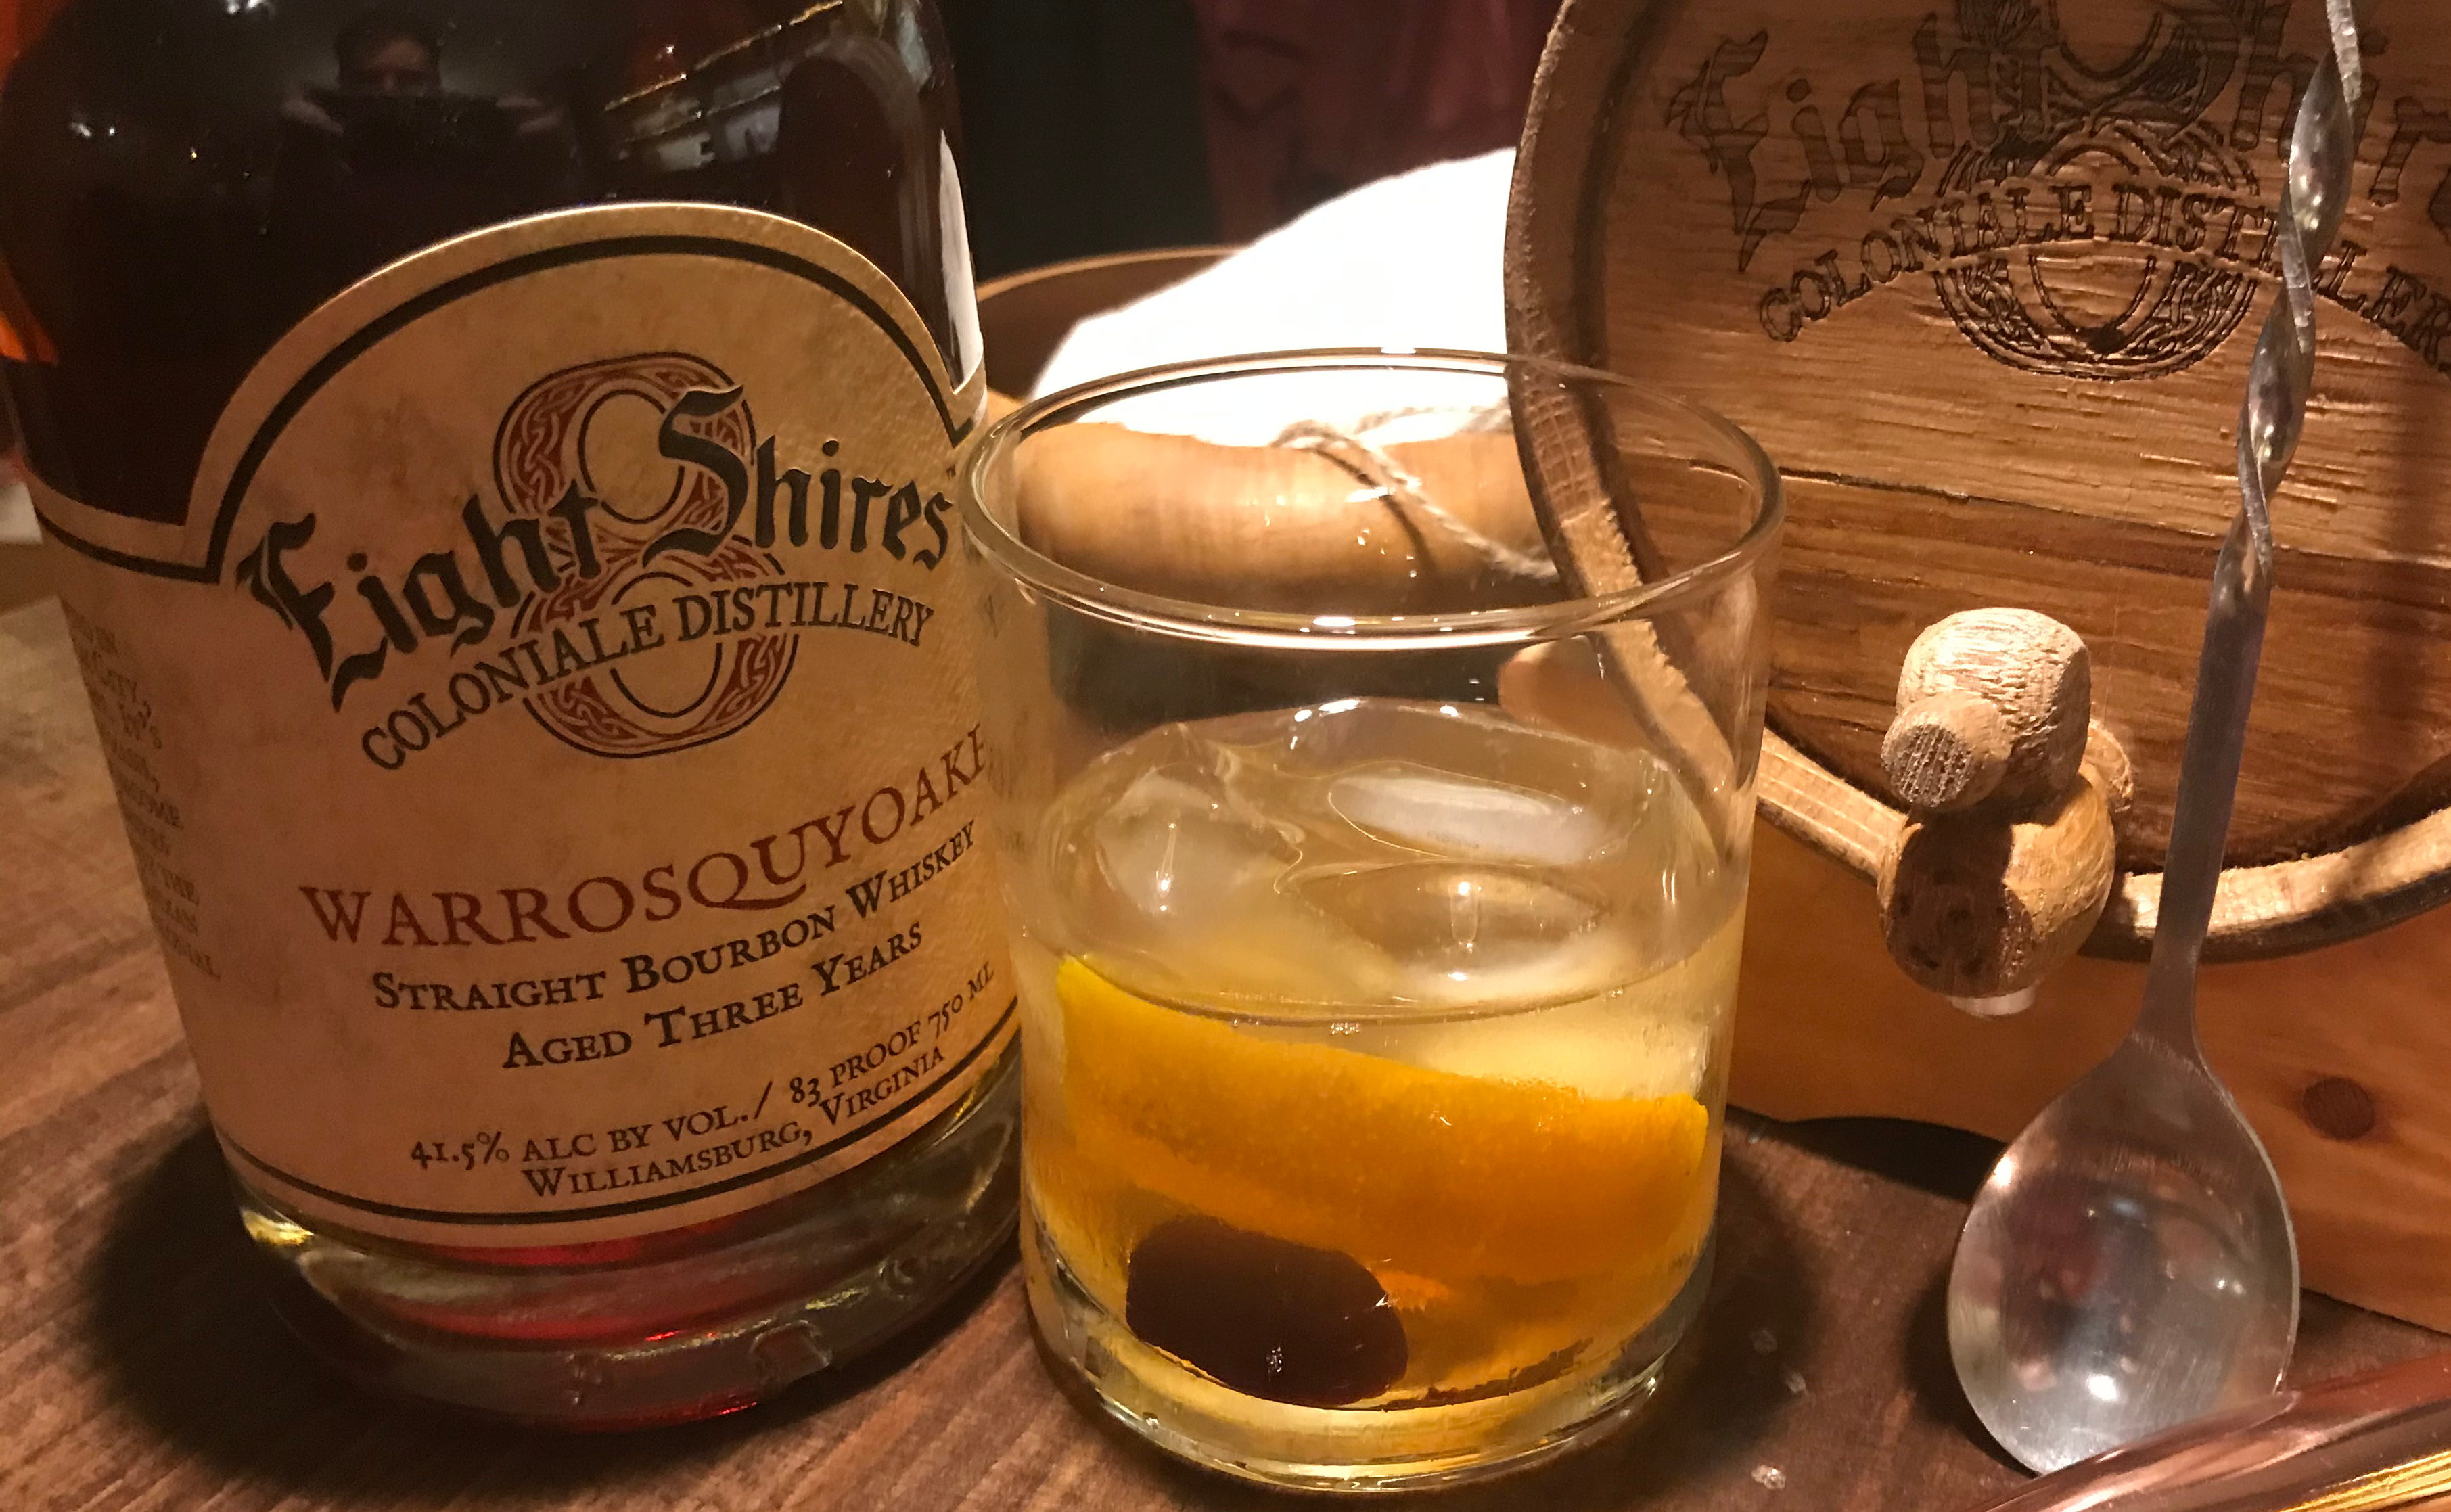 Eight Shires Old Fashioned